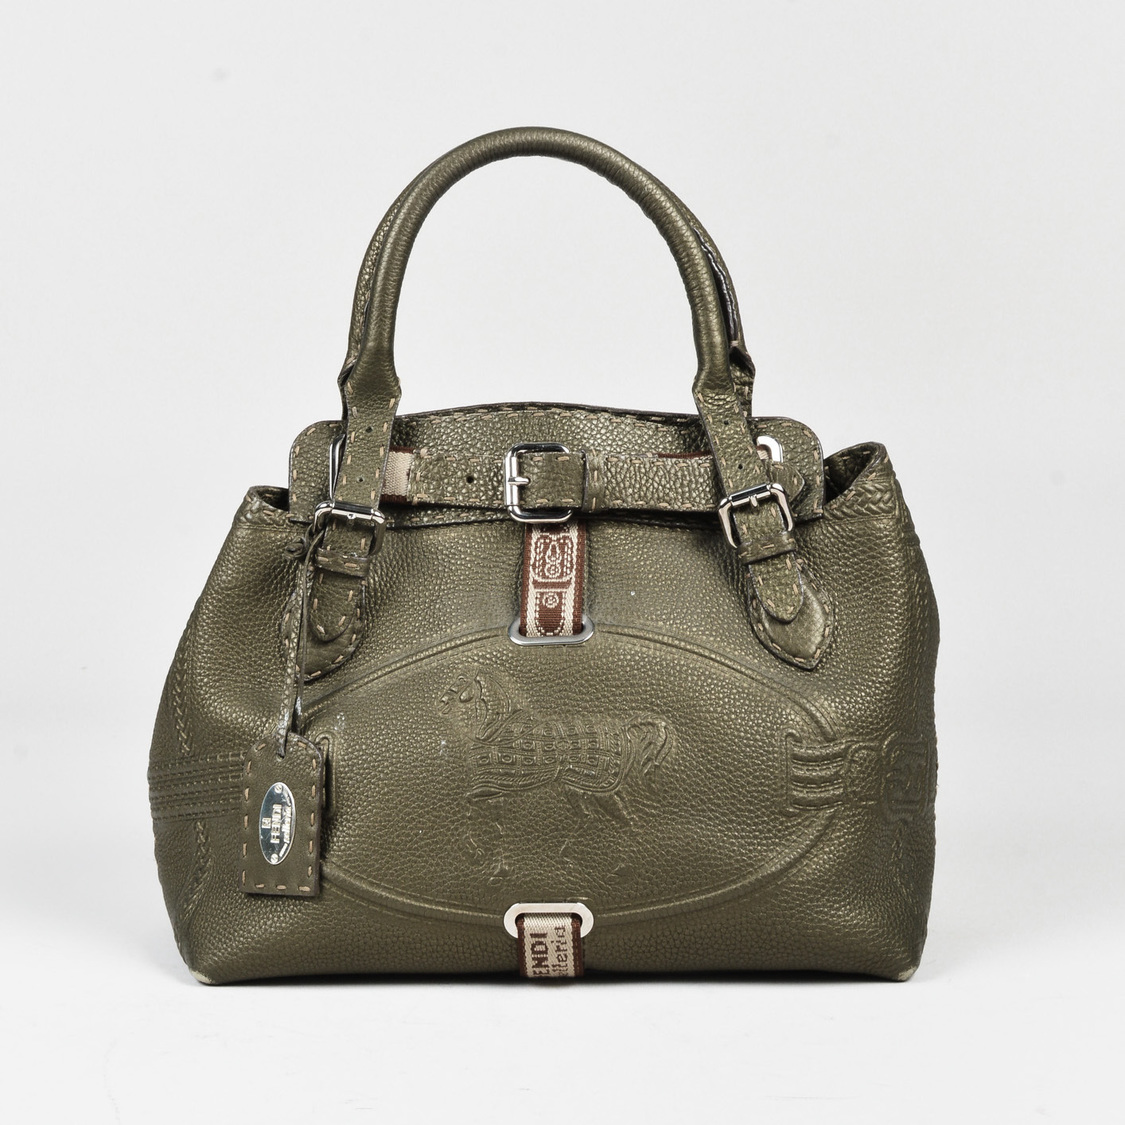 55fab591a12 Details about Fendi $2310 Olive Green